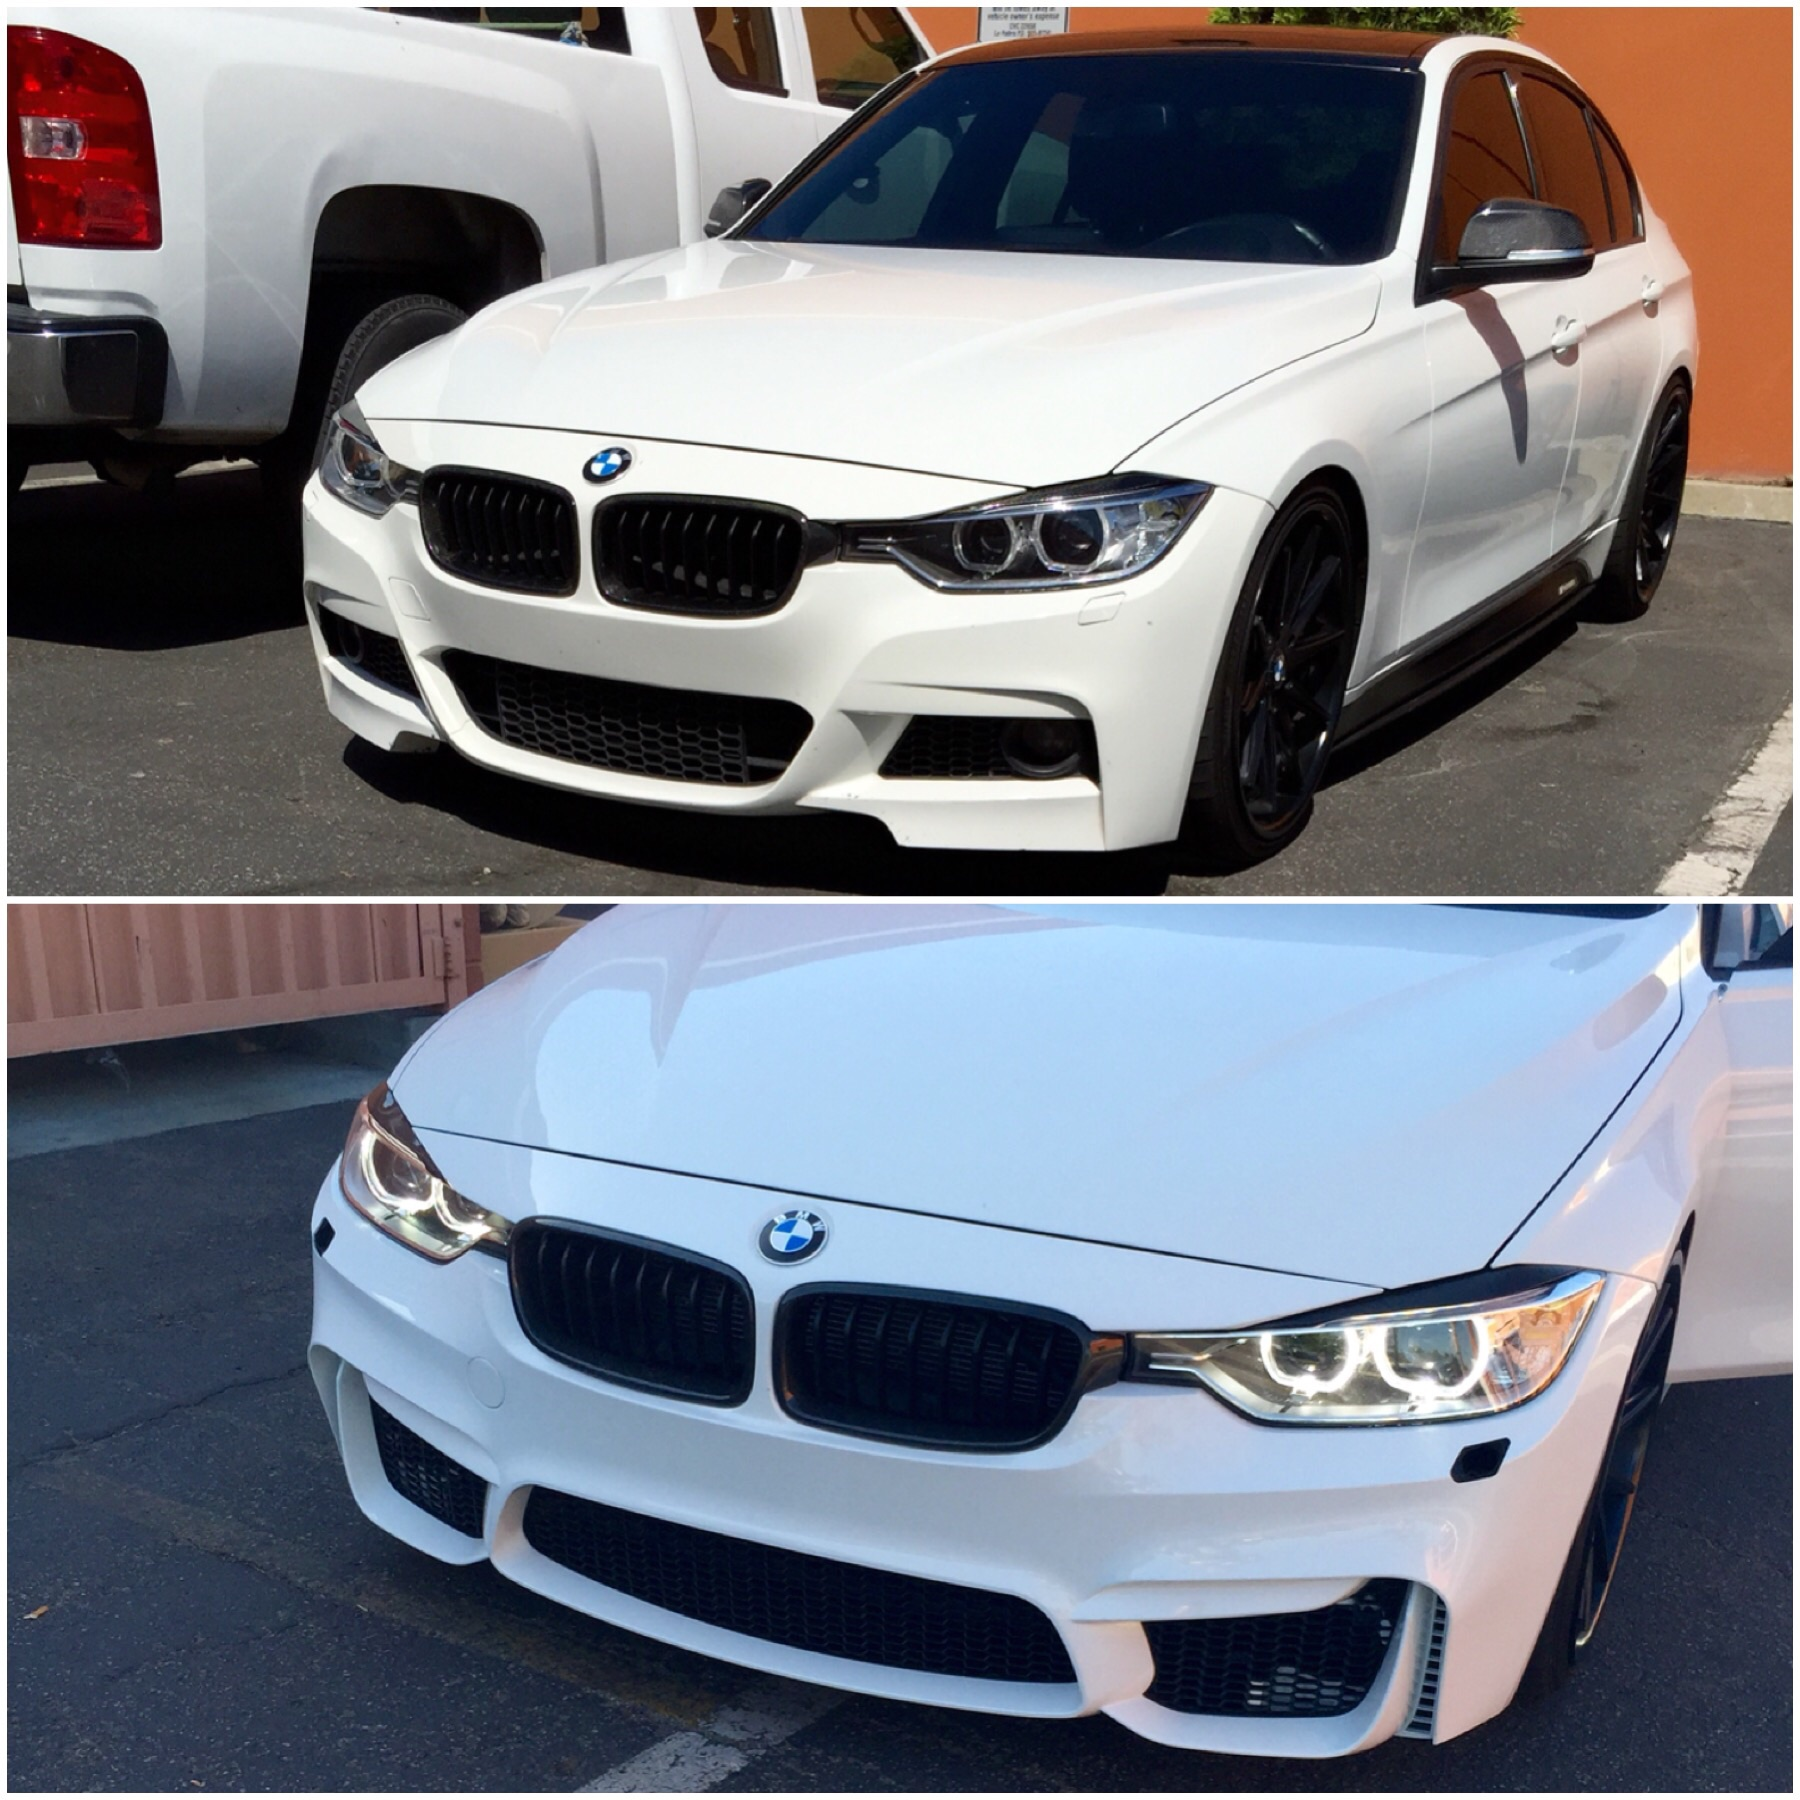 F80 Bumper For An F30